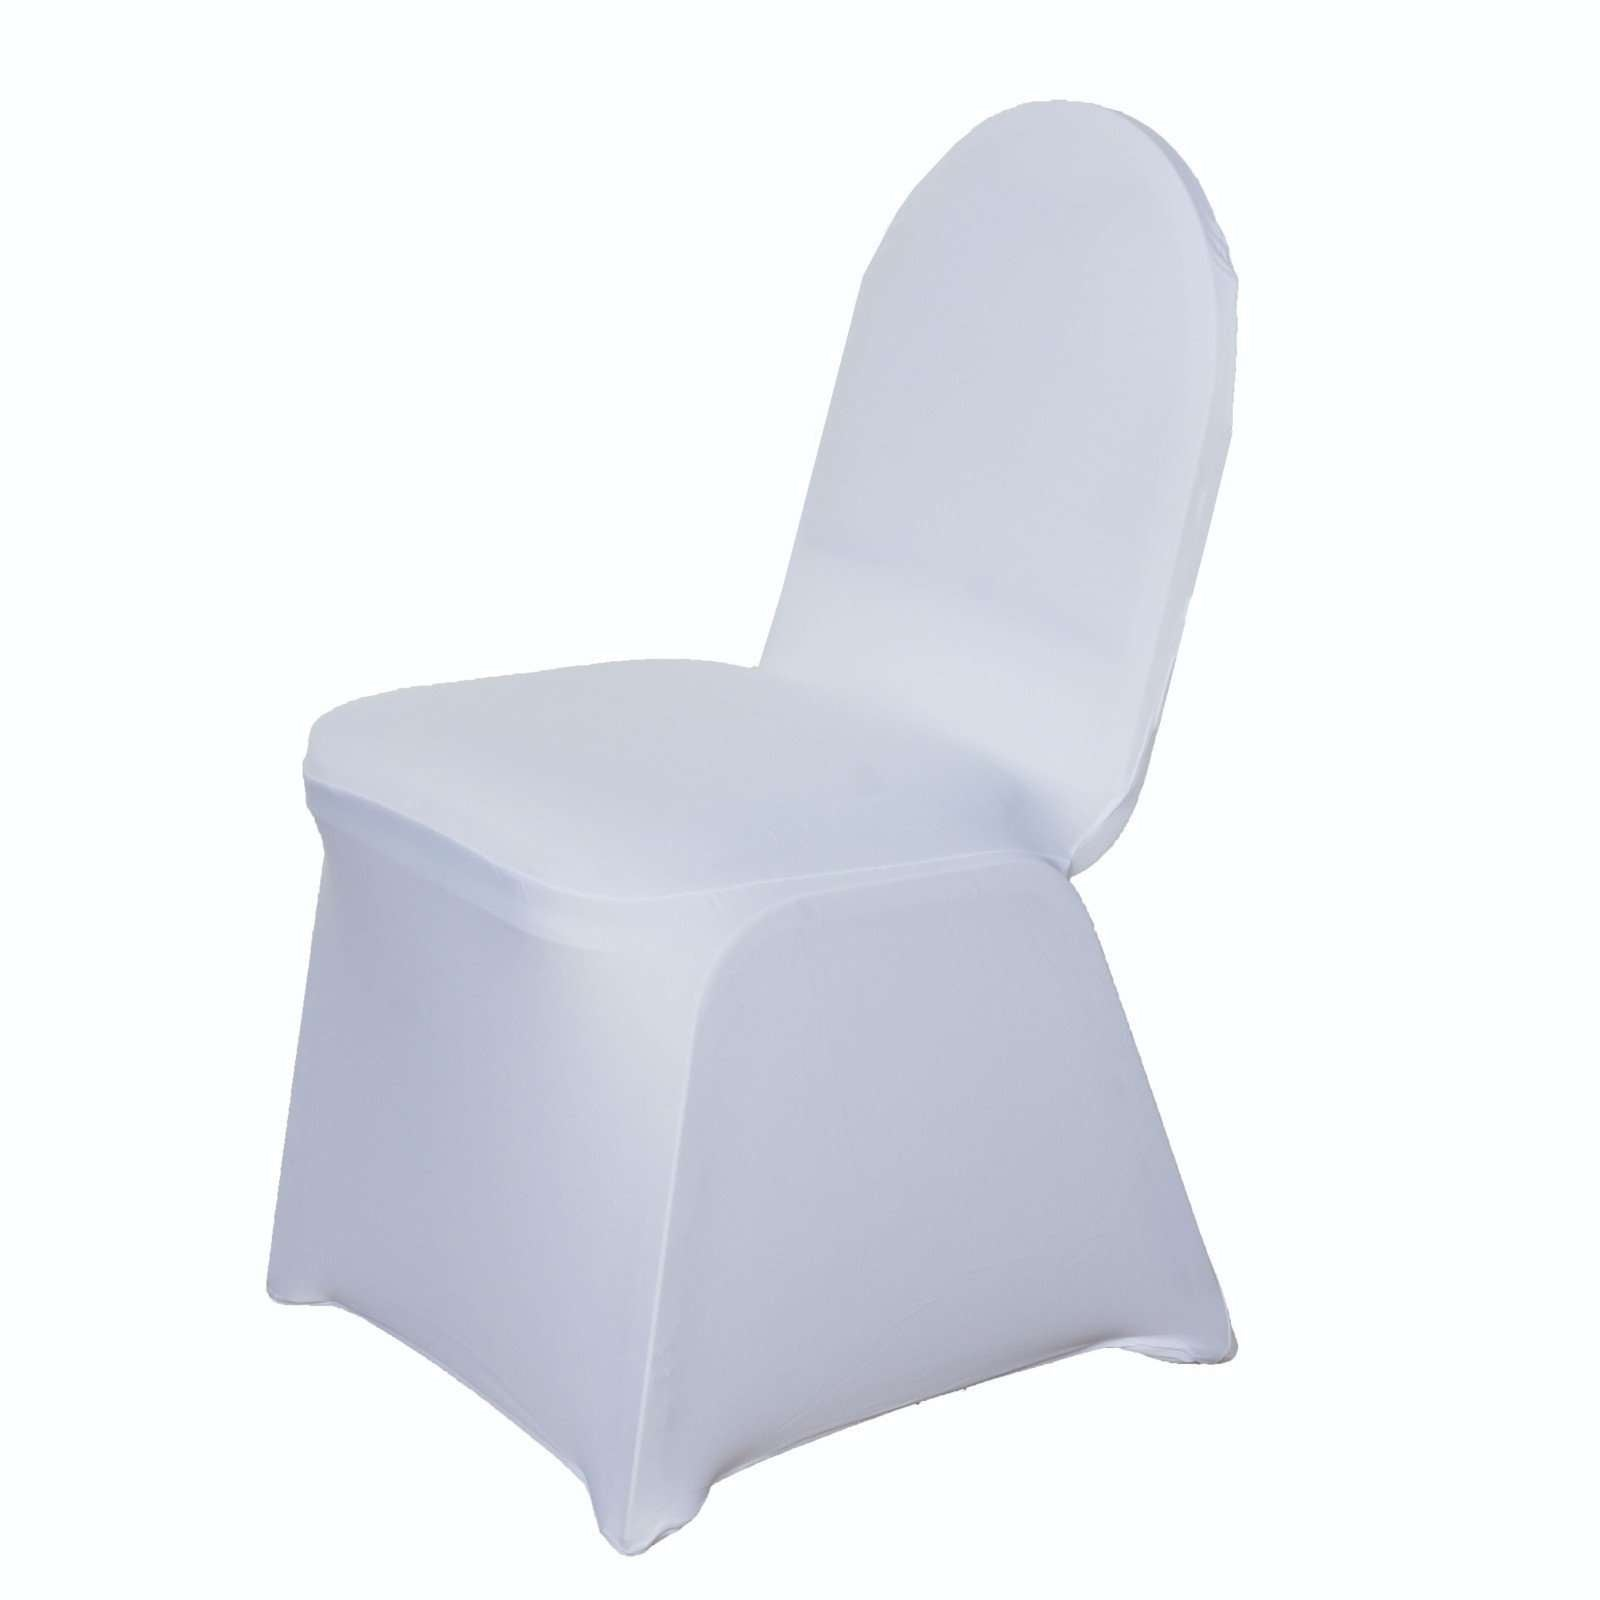 Fantastic Wholesale White Spandex Stretch Banquet Chair Cover Wedding Party Event Chaircoverfactory Frankydiablos Diy Chair Ideas Frankydiabloscom